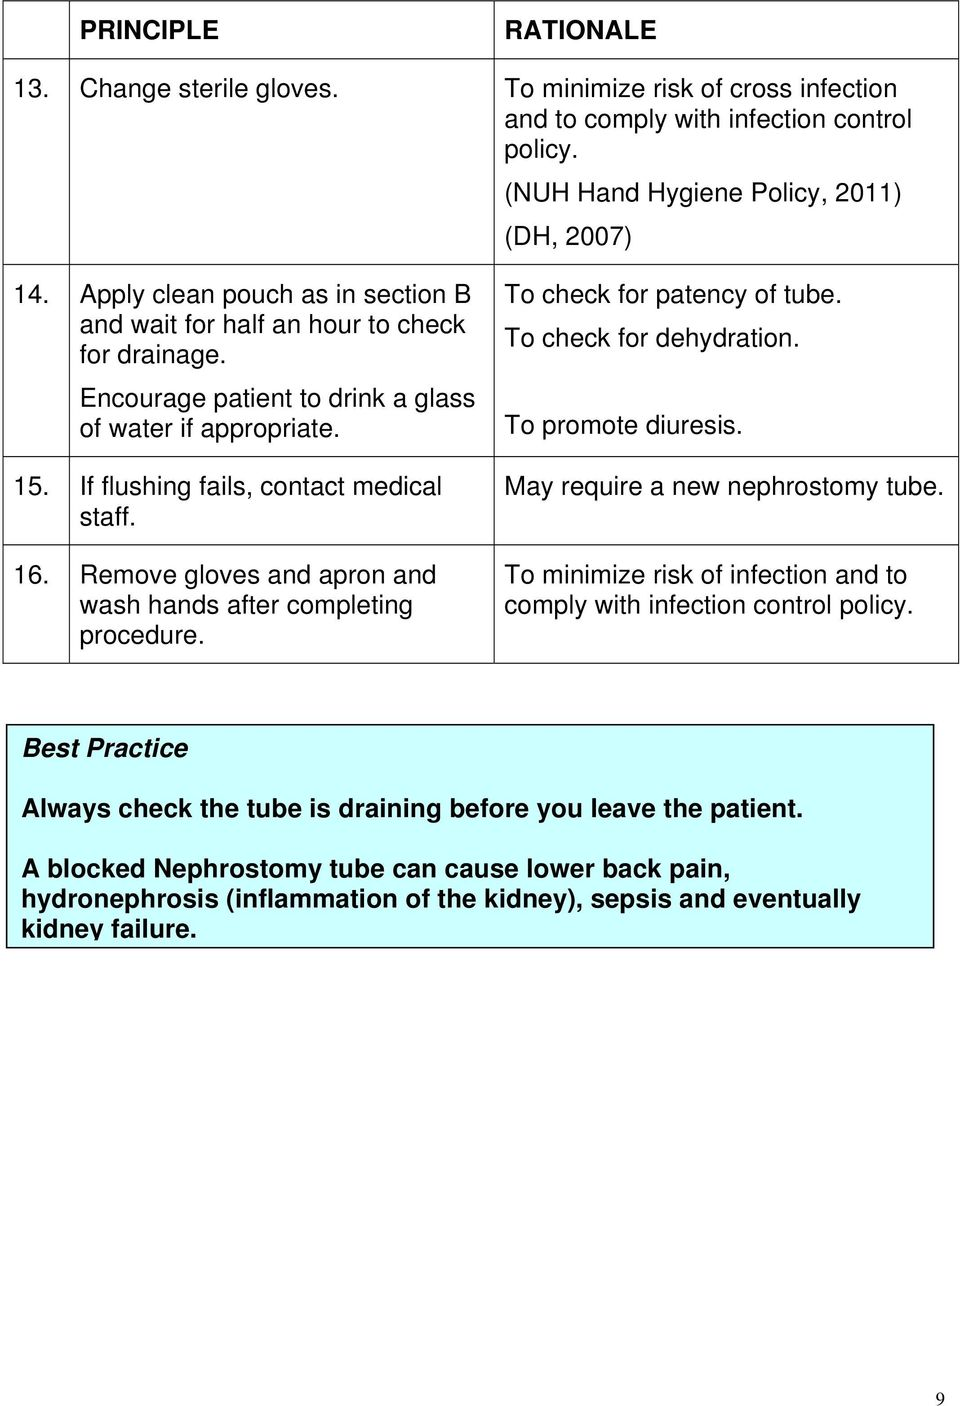 GUIDELINE FOR CARE OF A PATIENT WITH A NEPHROSTOMY TUBE - PDF